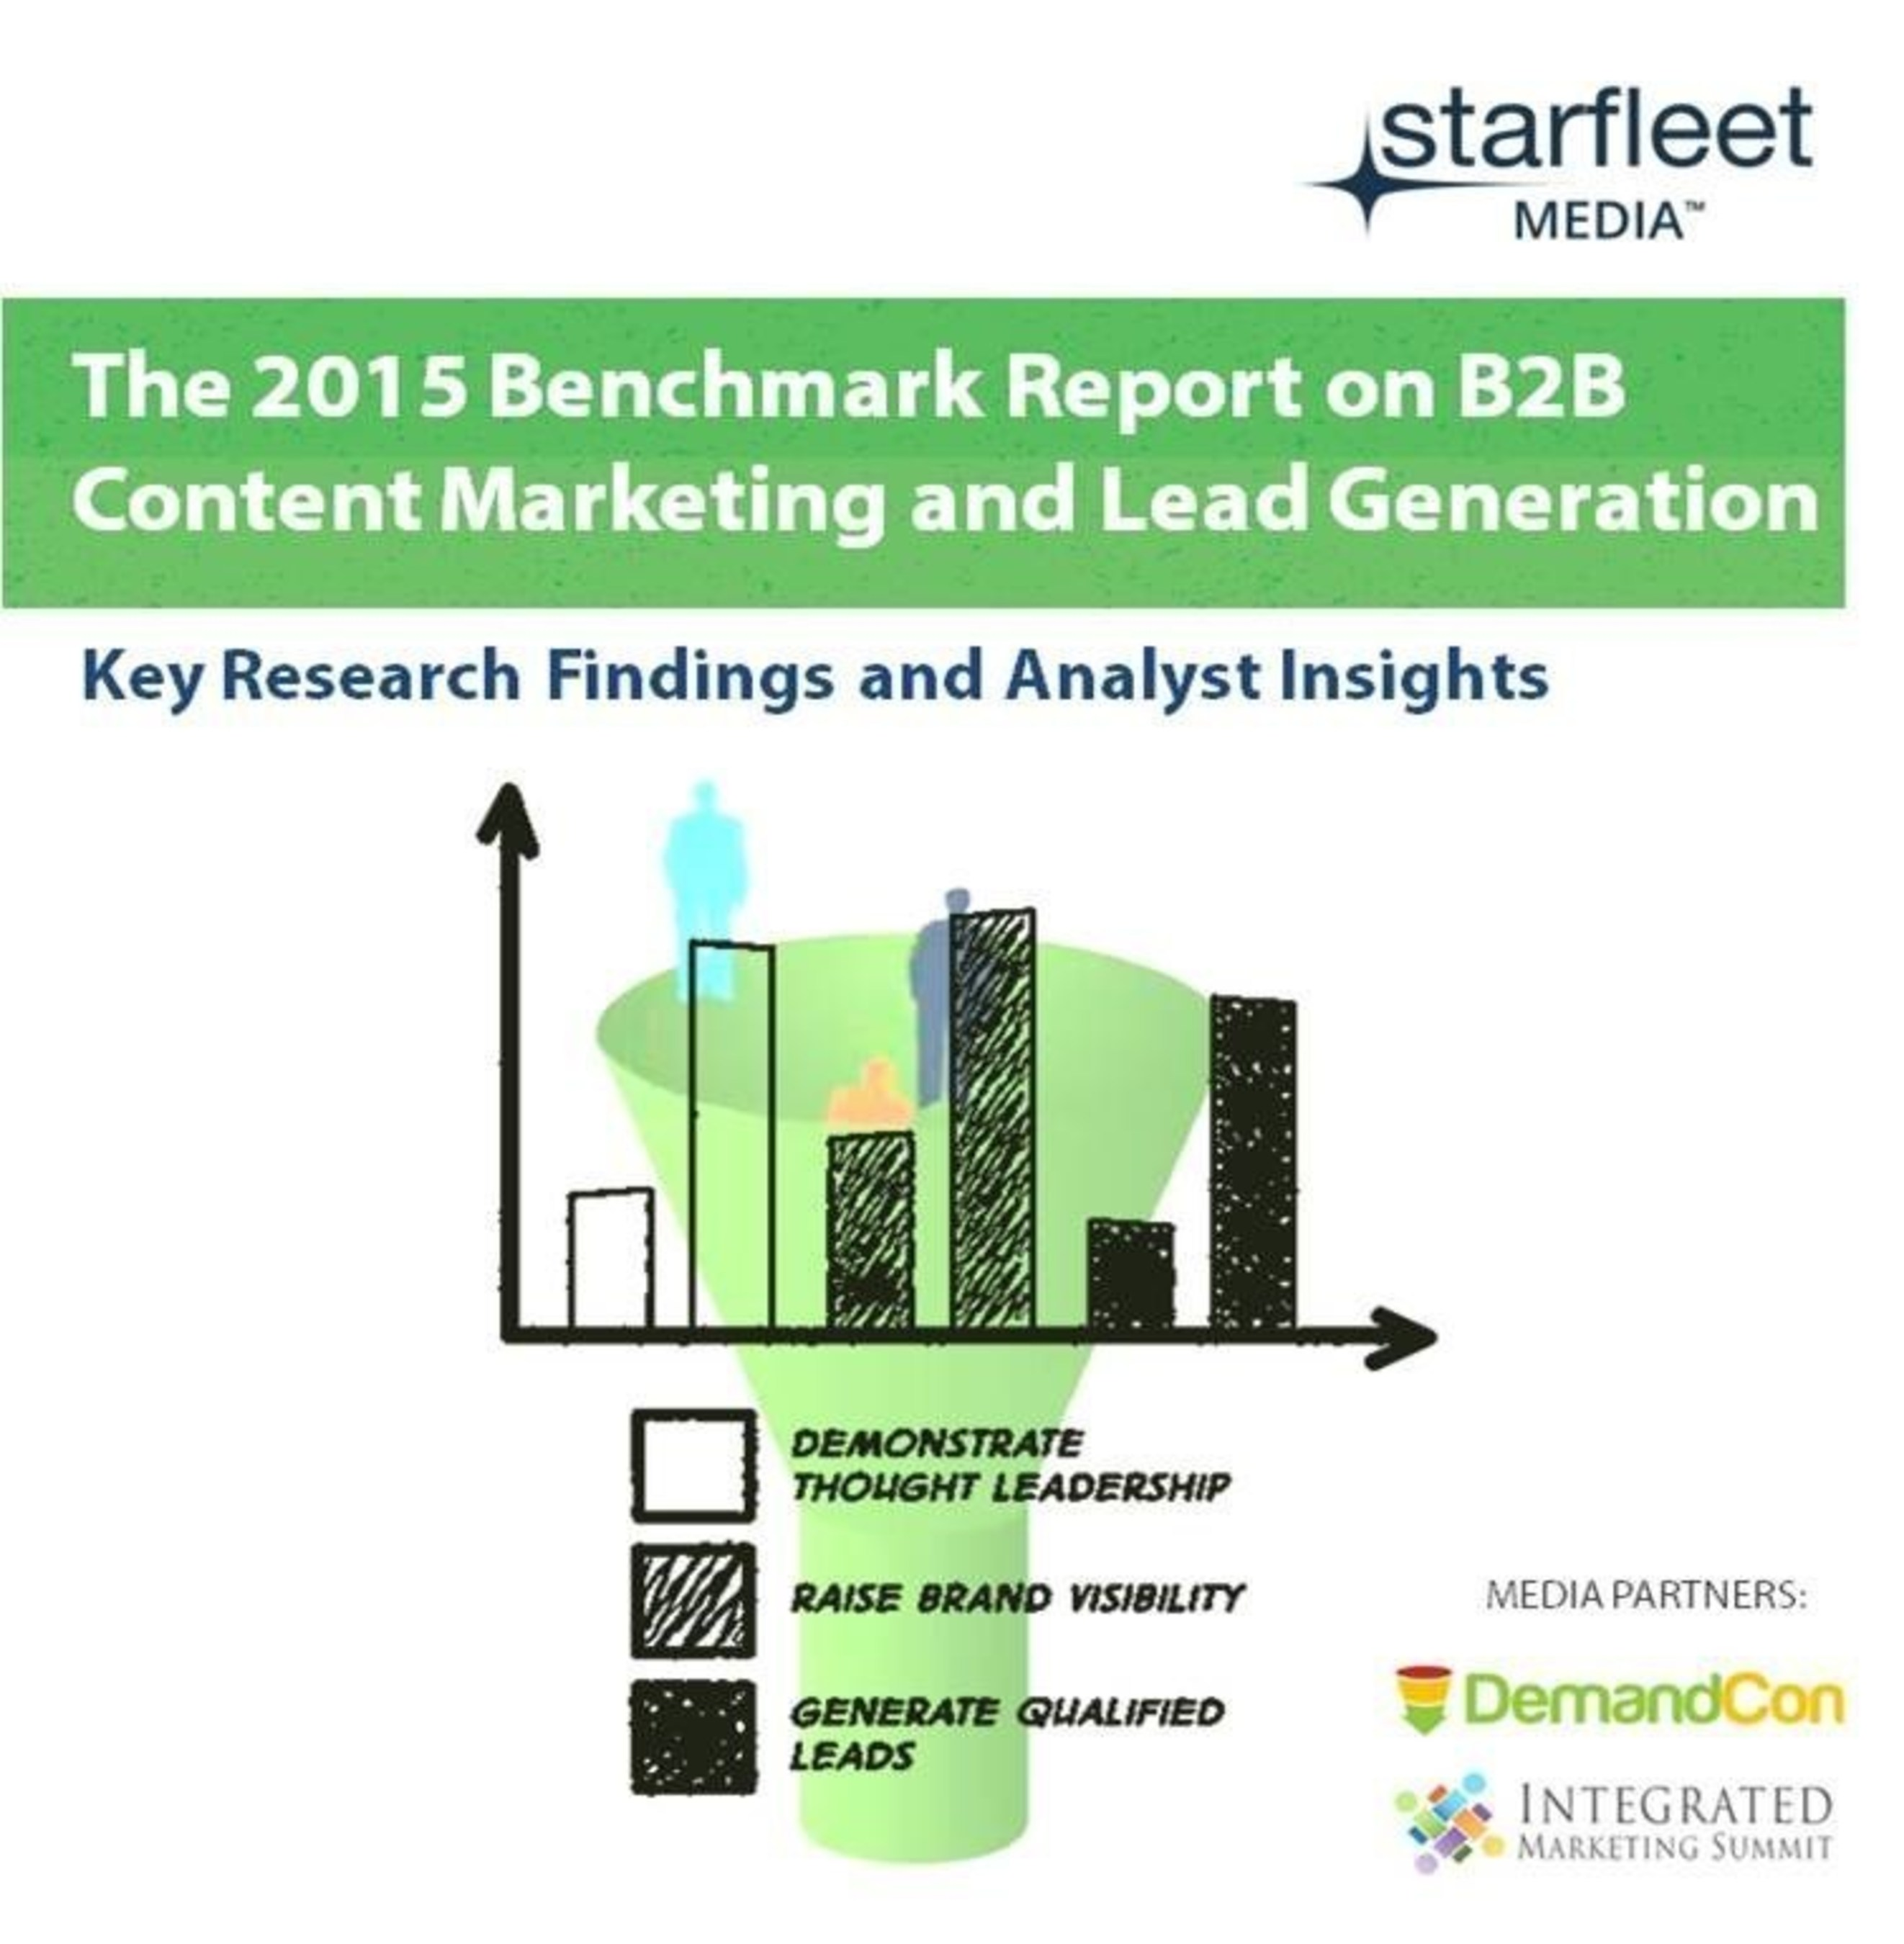 Starfleet Media Releases Authoritative Study on B2B Content Marketing and Lead Generation